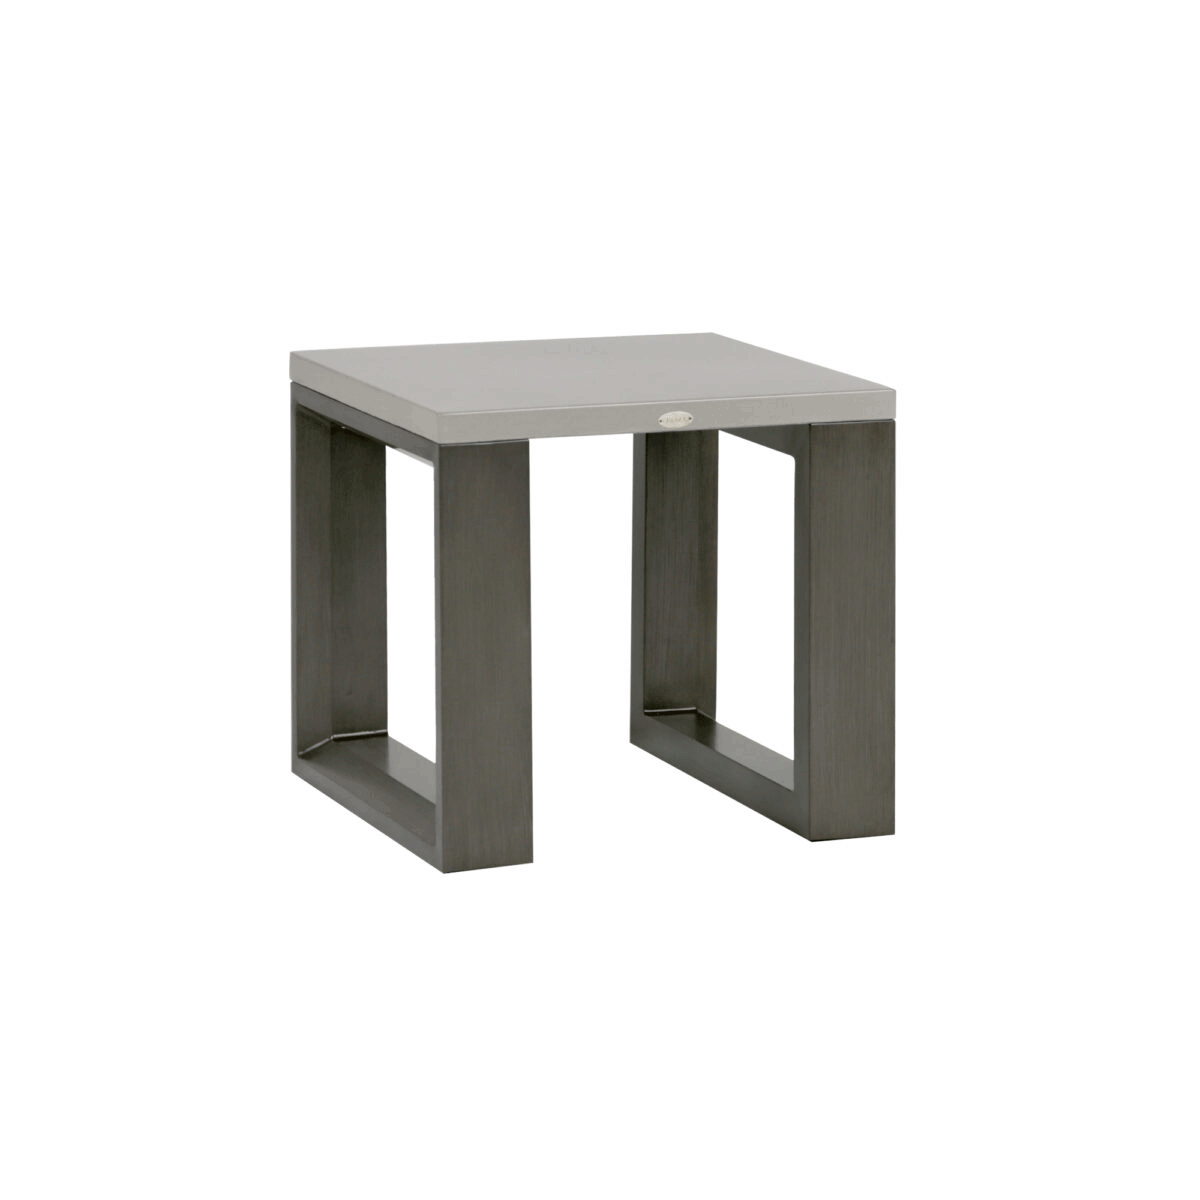 Element 5.0 Side Table - Ash Grey